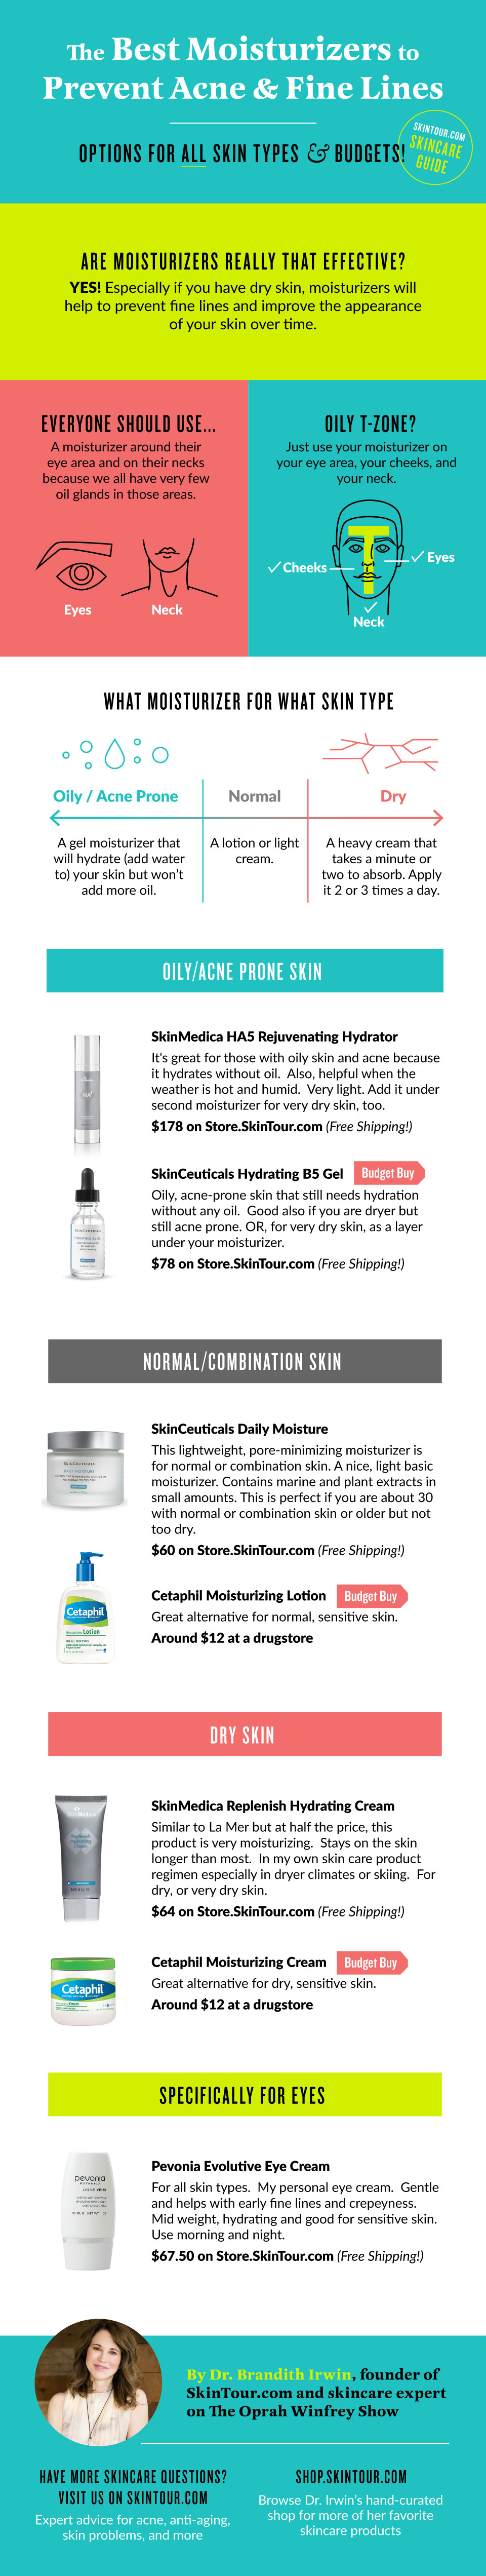 Prevent acne and fine lines with the right moisturizer! A guide to the best moisturizers for your skin type...